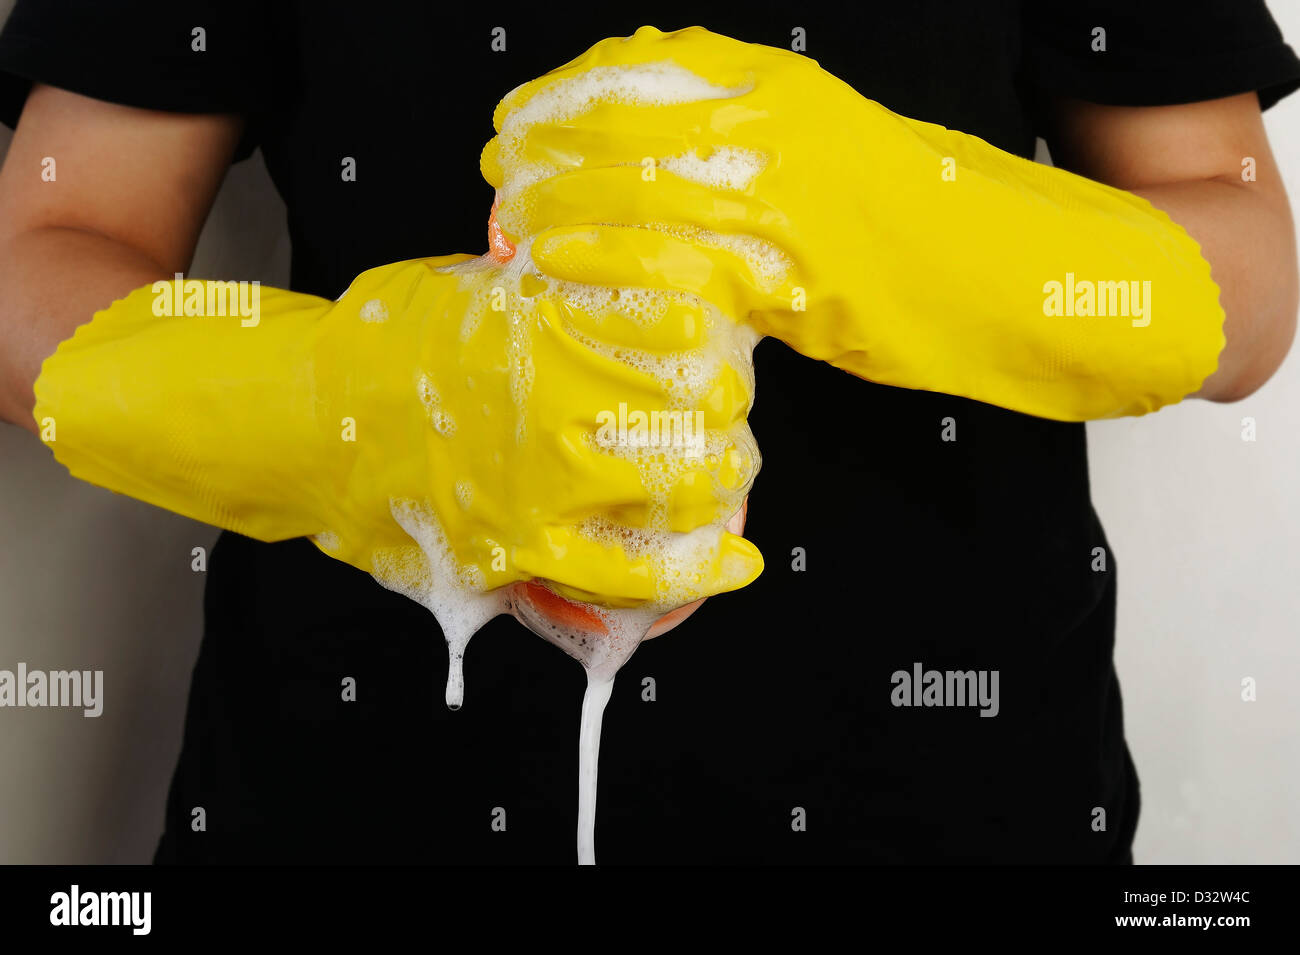 gloved hand squeezes a sponge for cleaning - Stock Image